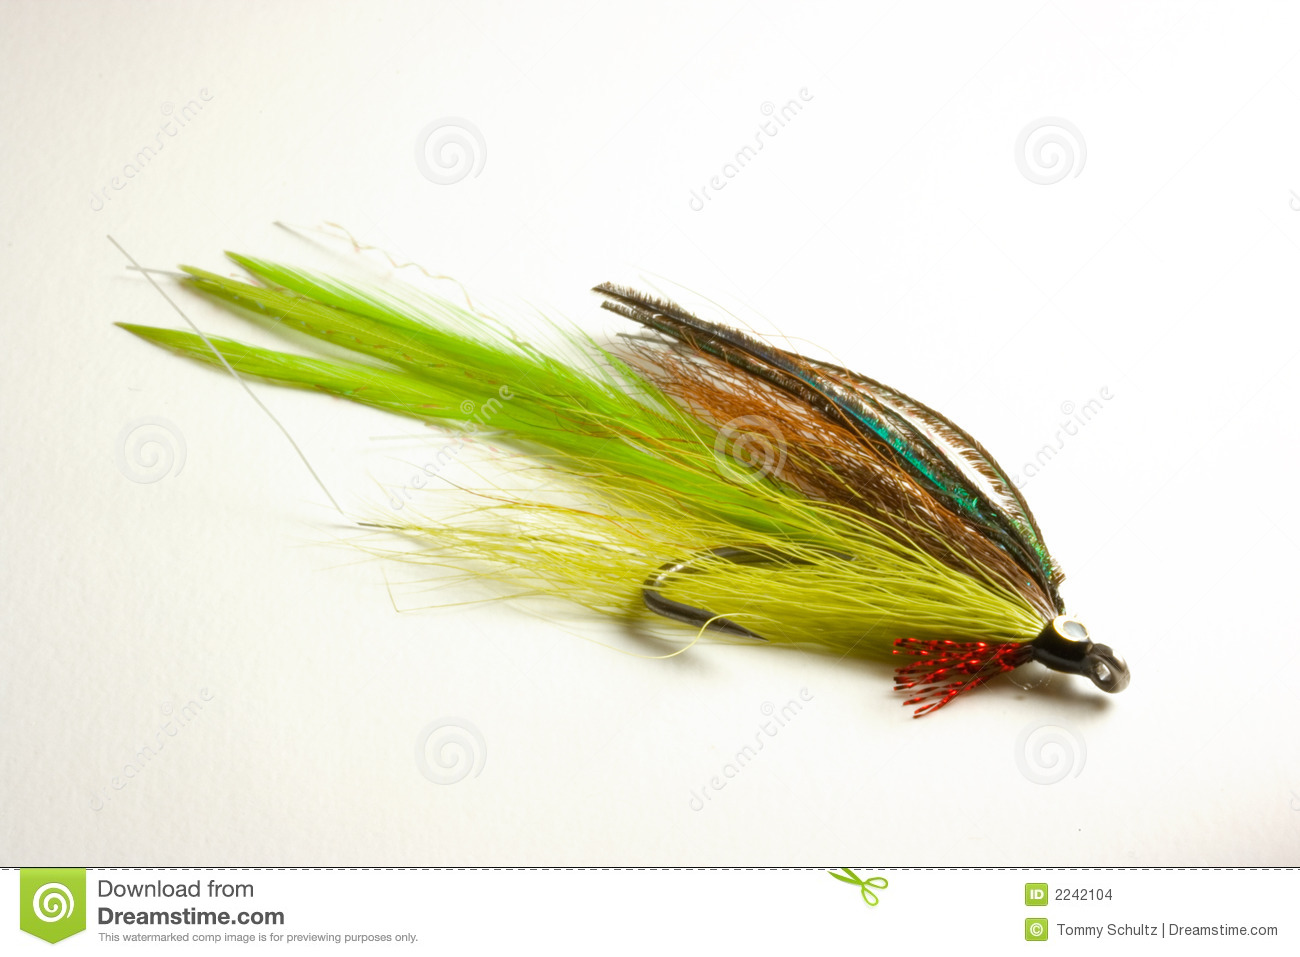 Fly fishing lures for trout the image for Fly fishing lures